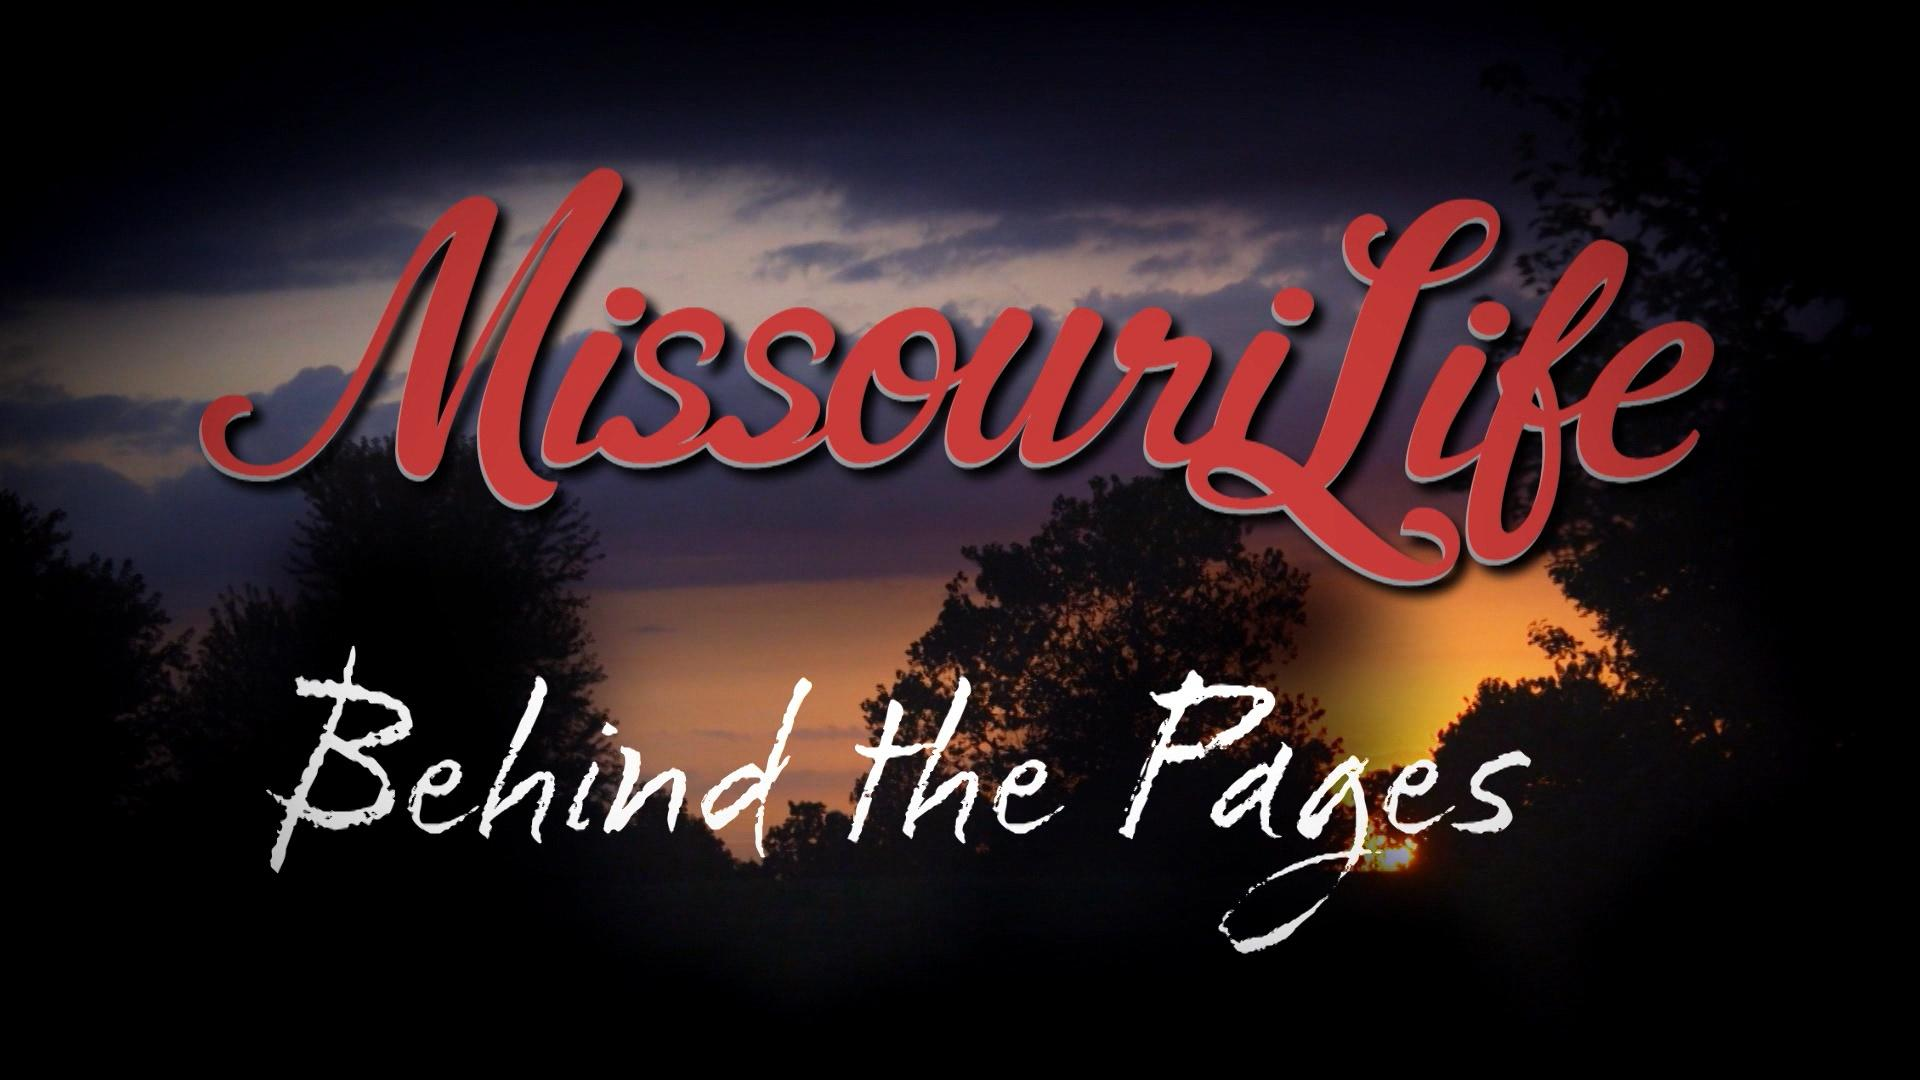 Missouri Life #406 Behind the Pages